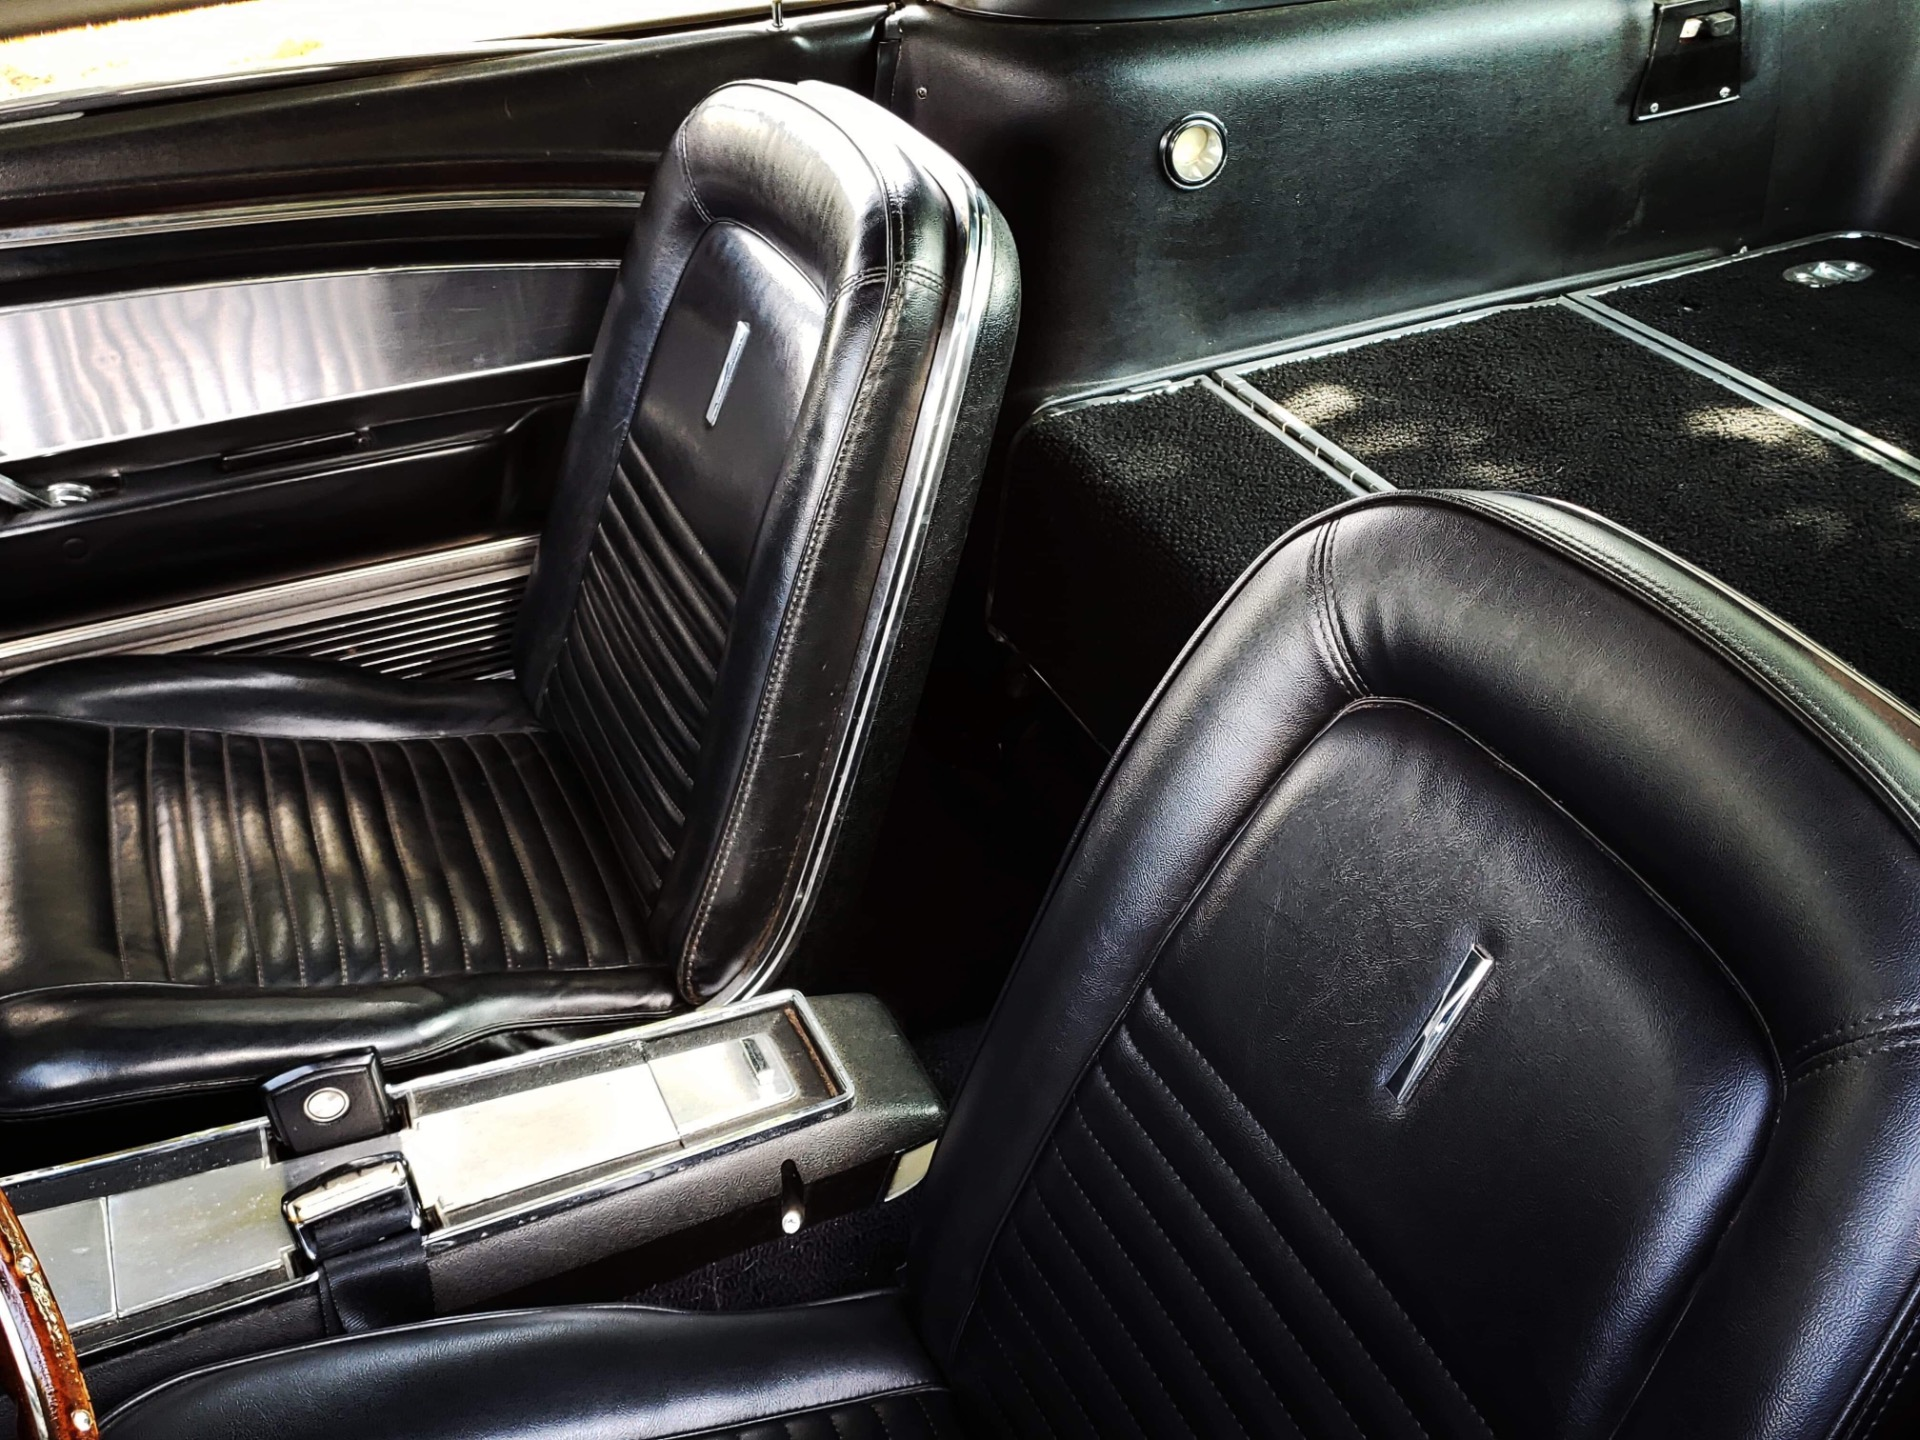 Used 1967 Ford Mustang -S CODE 4 SPEED | Mundelein, IL